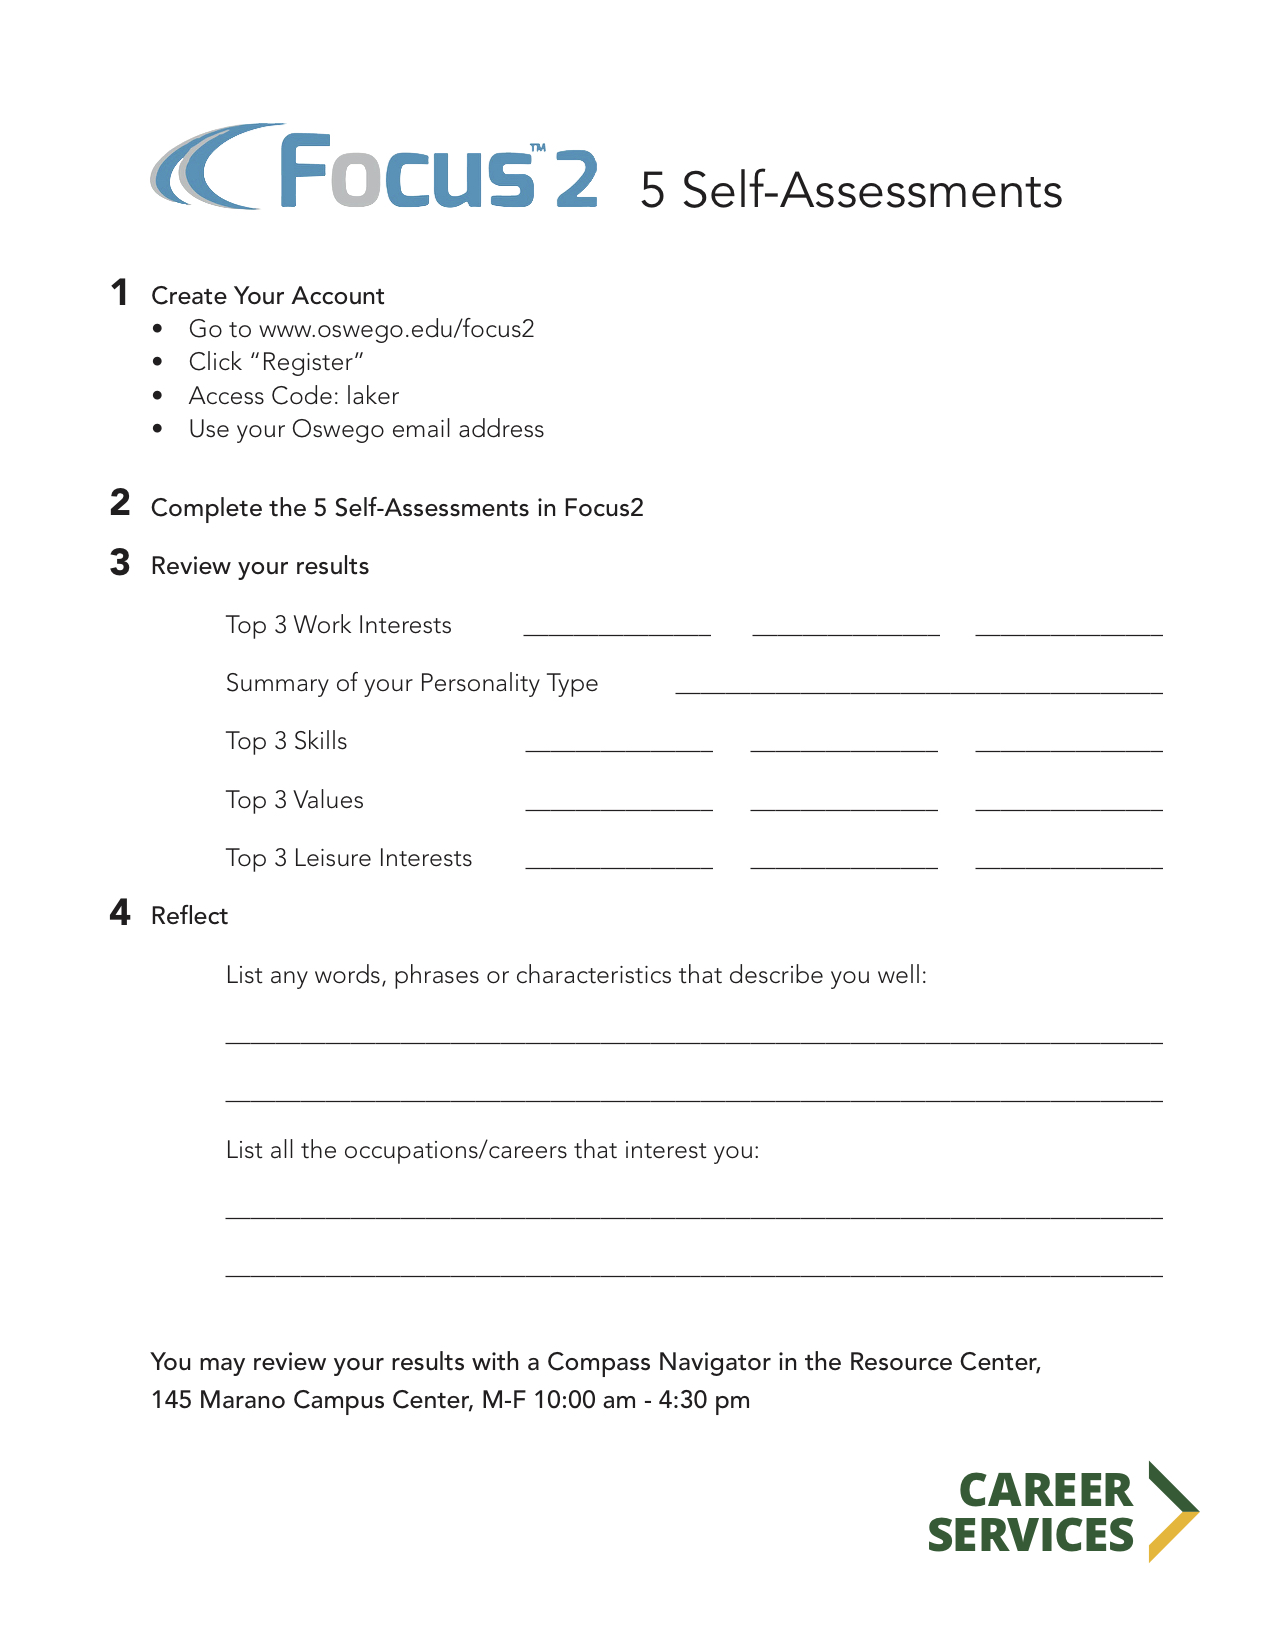 self assessment suny oswego career services self assessments activity